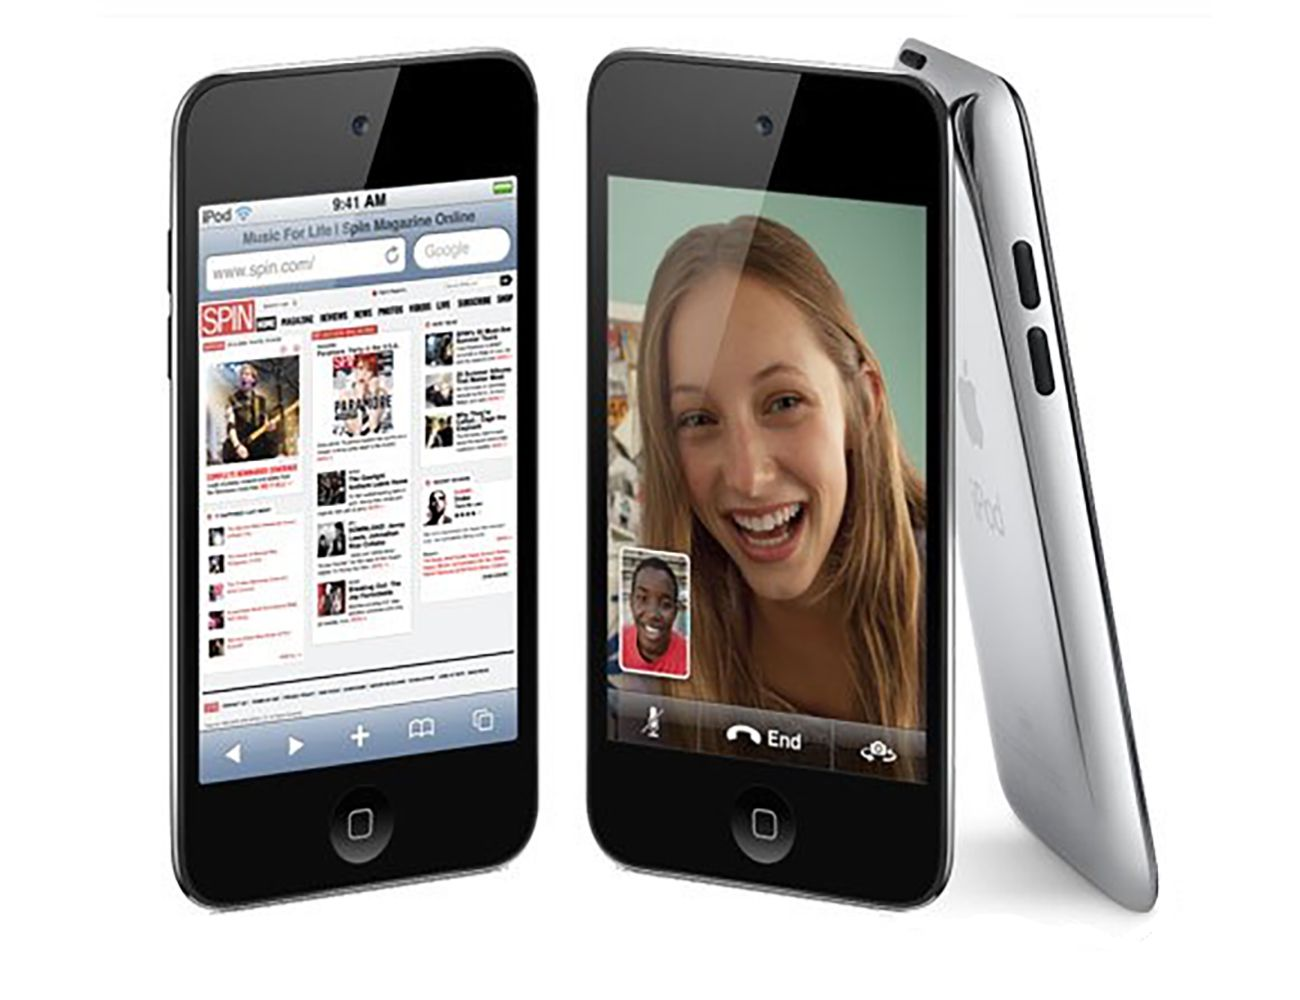 IPod Touch Review (4th Generation